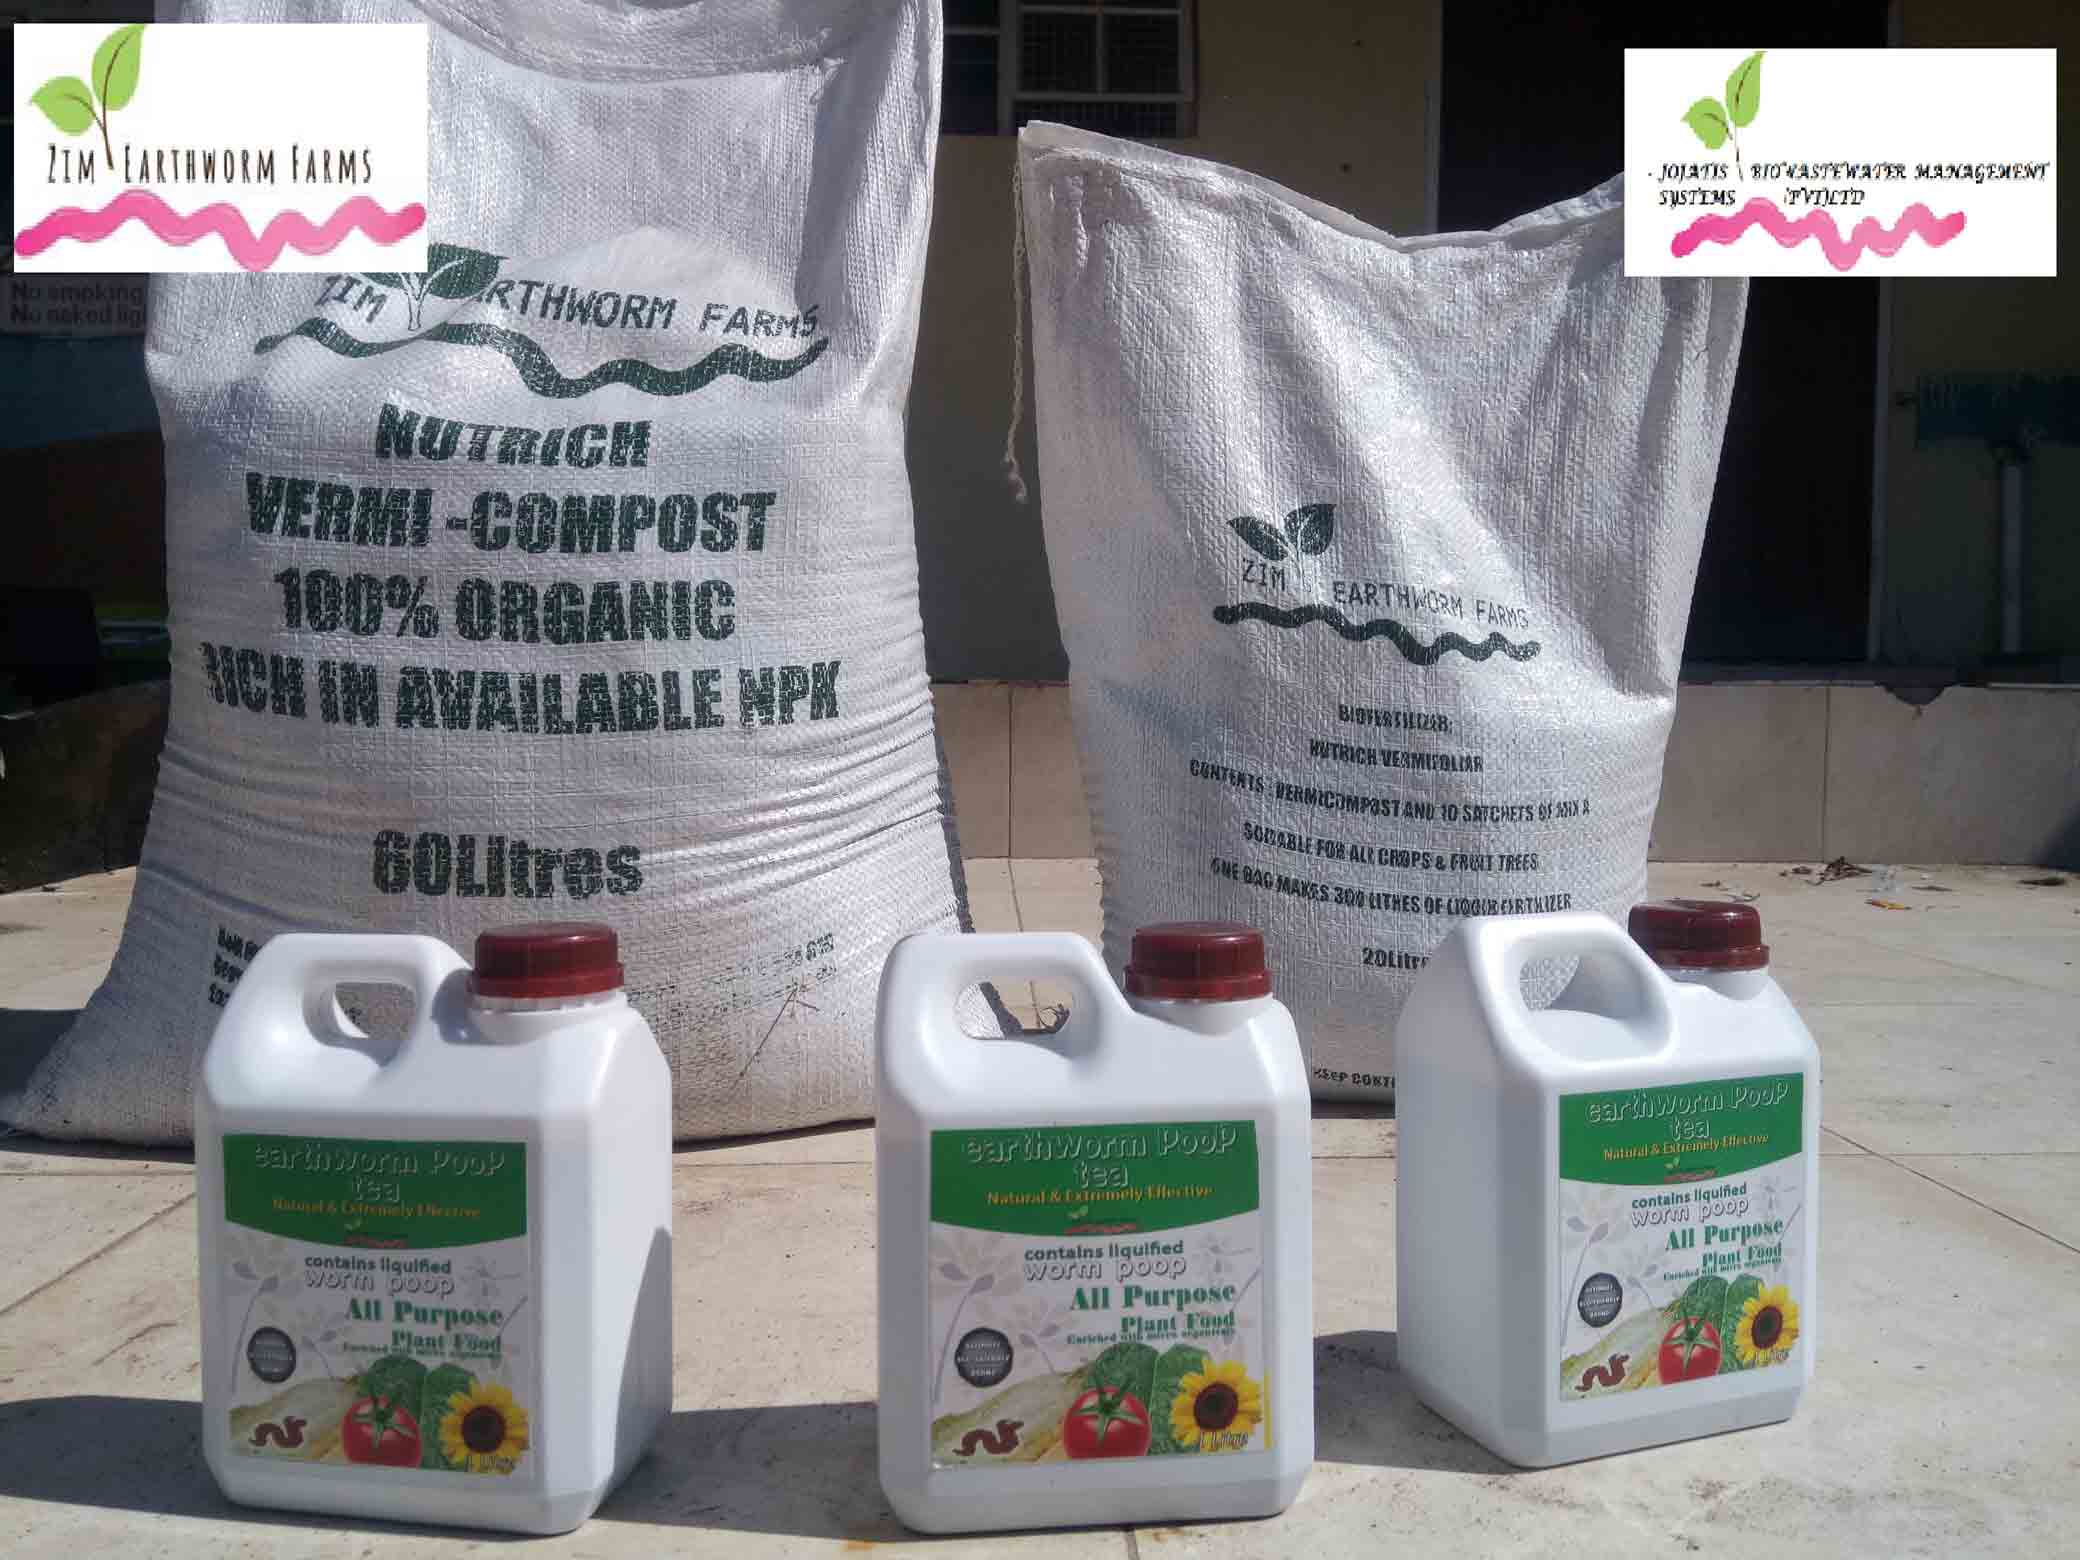 ZIM-EARTHWORM-FARMS-PRODUCT-Harare-Zimbabwe